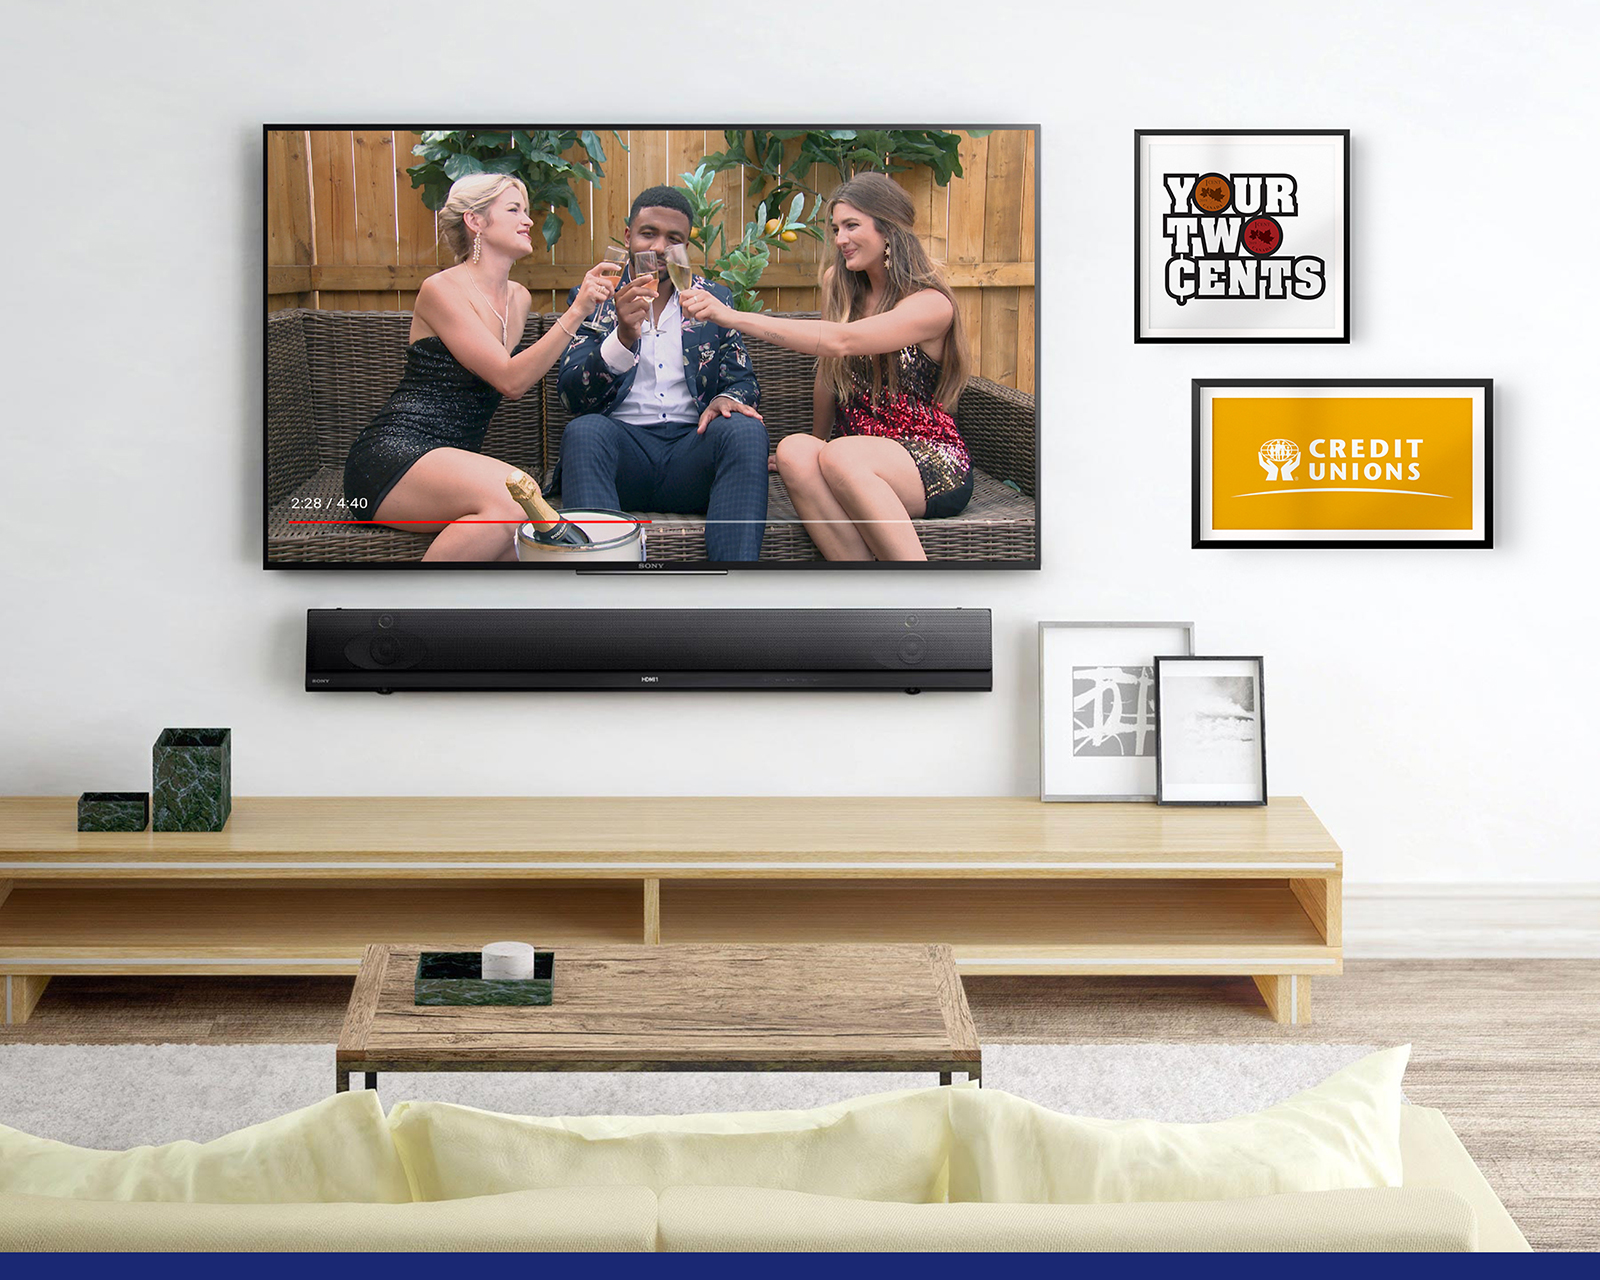 A living room with a TV showing two women toasting a male in the middle.